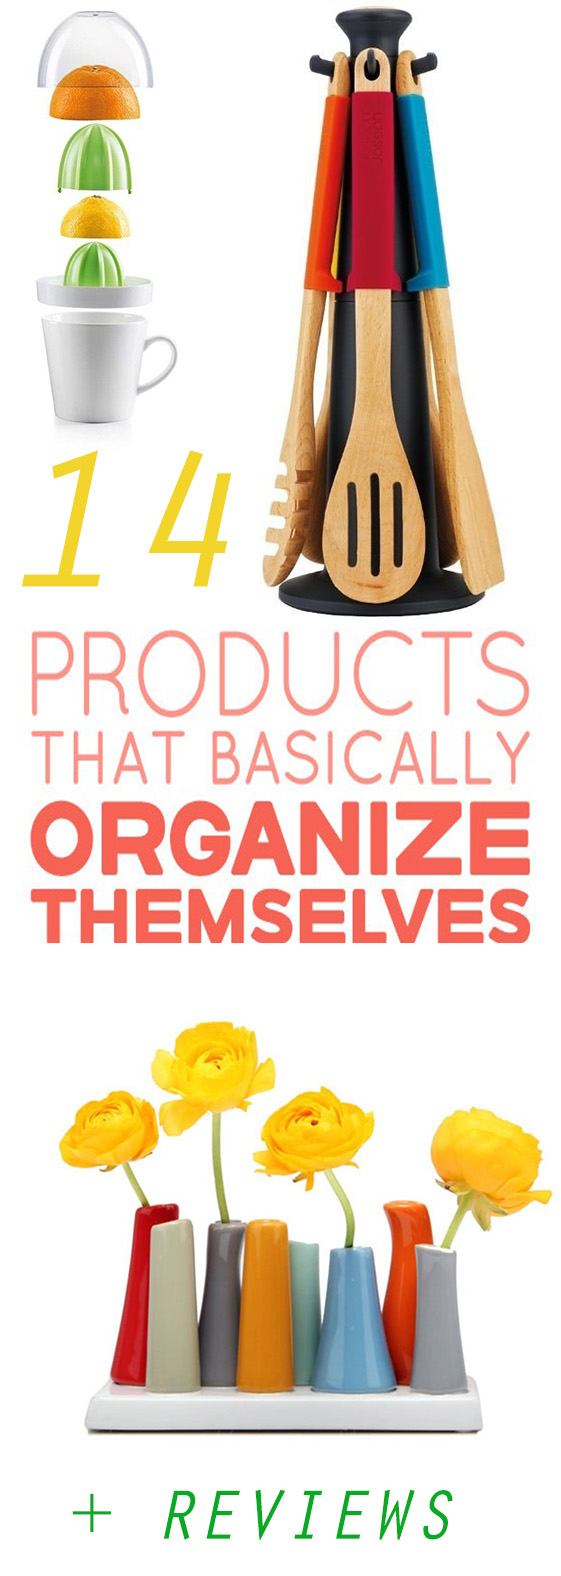 14 Products That Basically Organize Themselves - 14 Products That Basically Organize Themselves